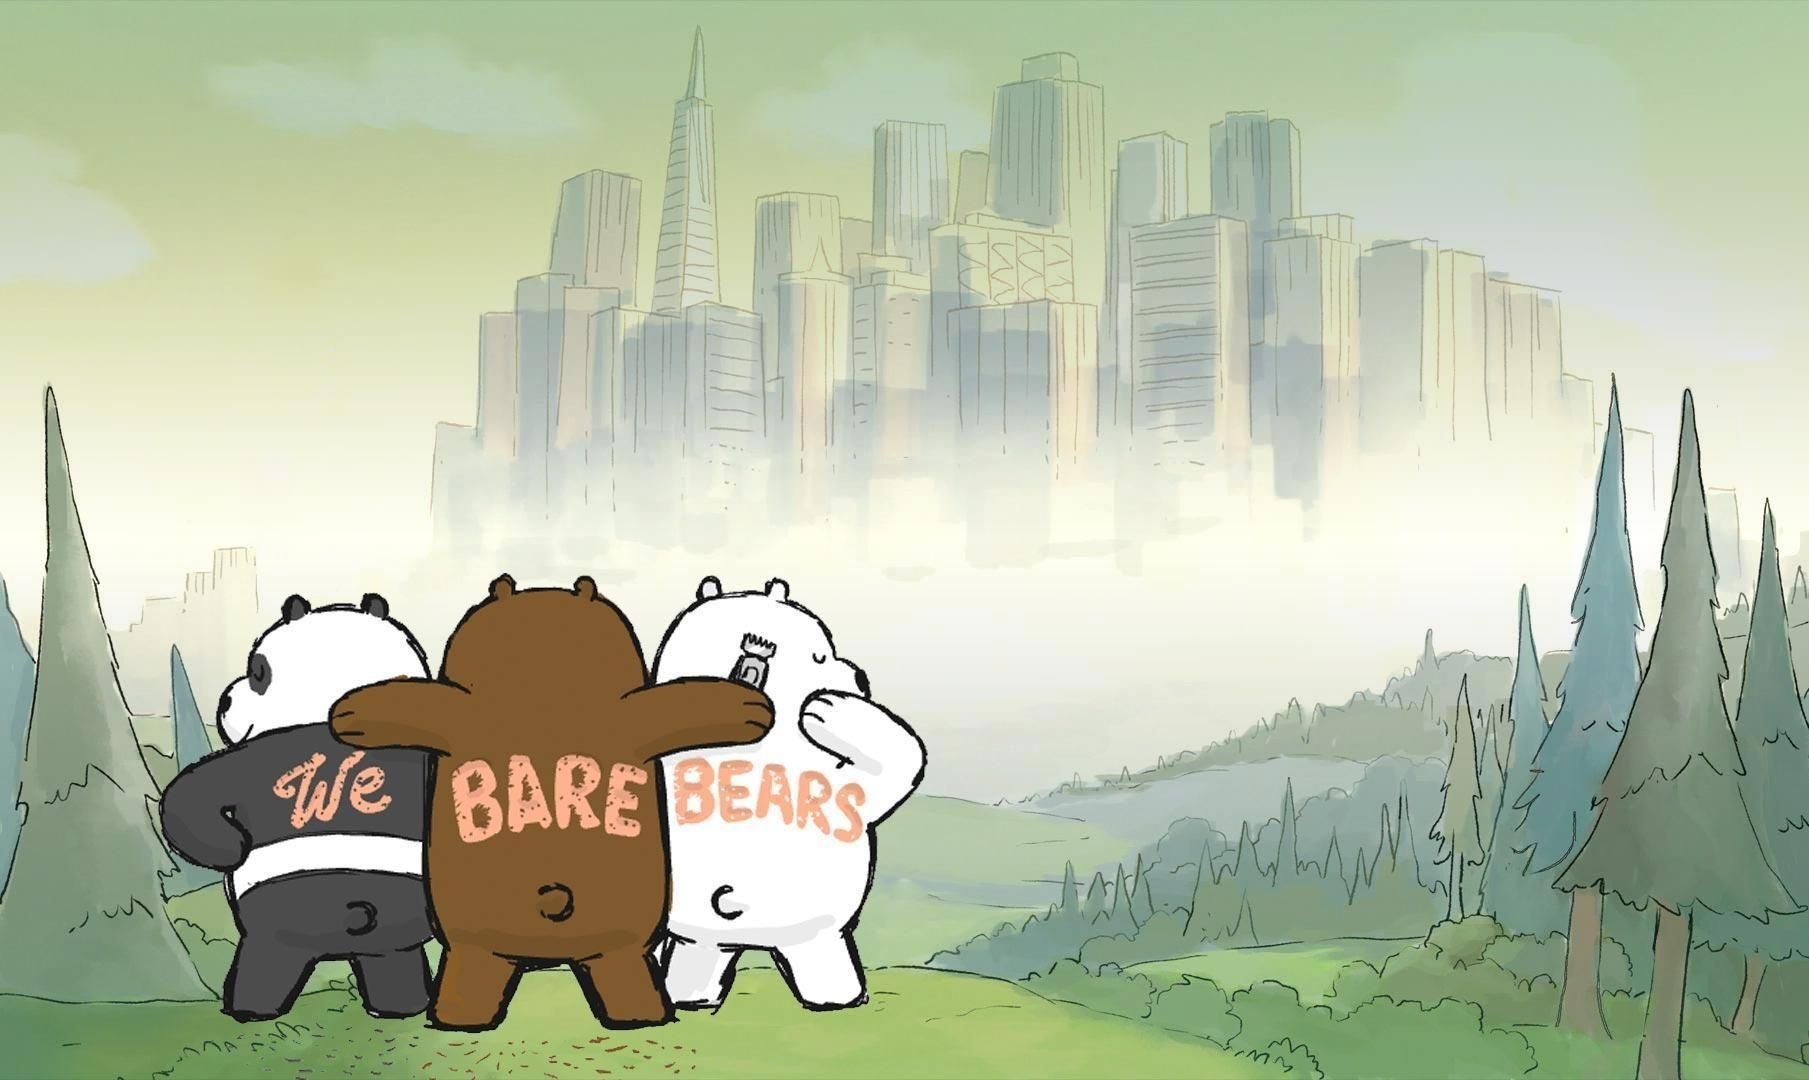 We Bare Bears Wallpapers Wallpaper Cave With We Bare Bears Wallpaper Landscape In 2020 We Bare Bears Wallpapers Bear Wallpaper We Bare Bears